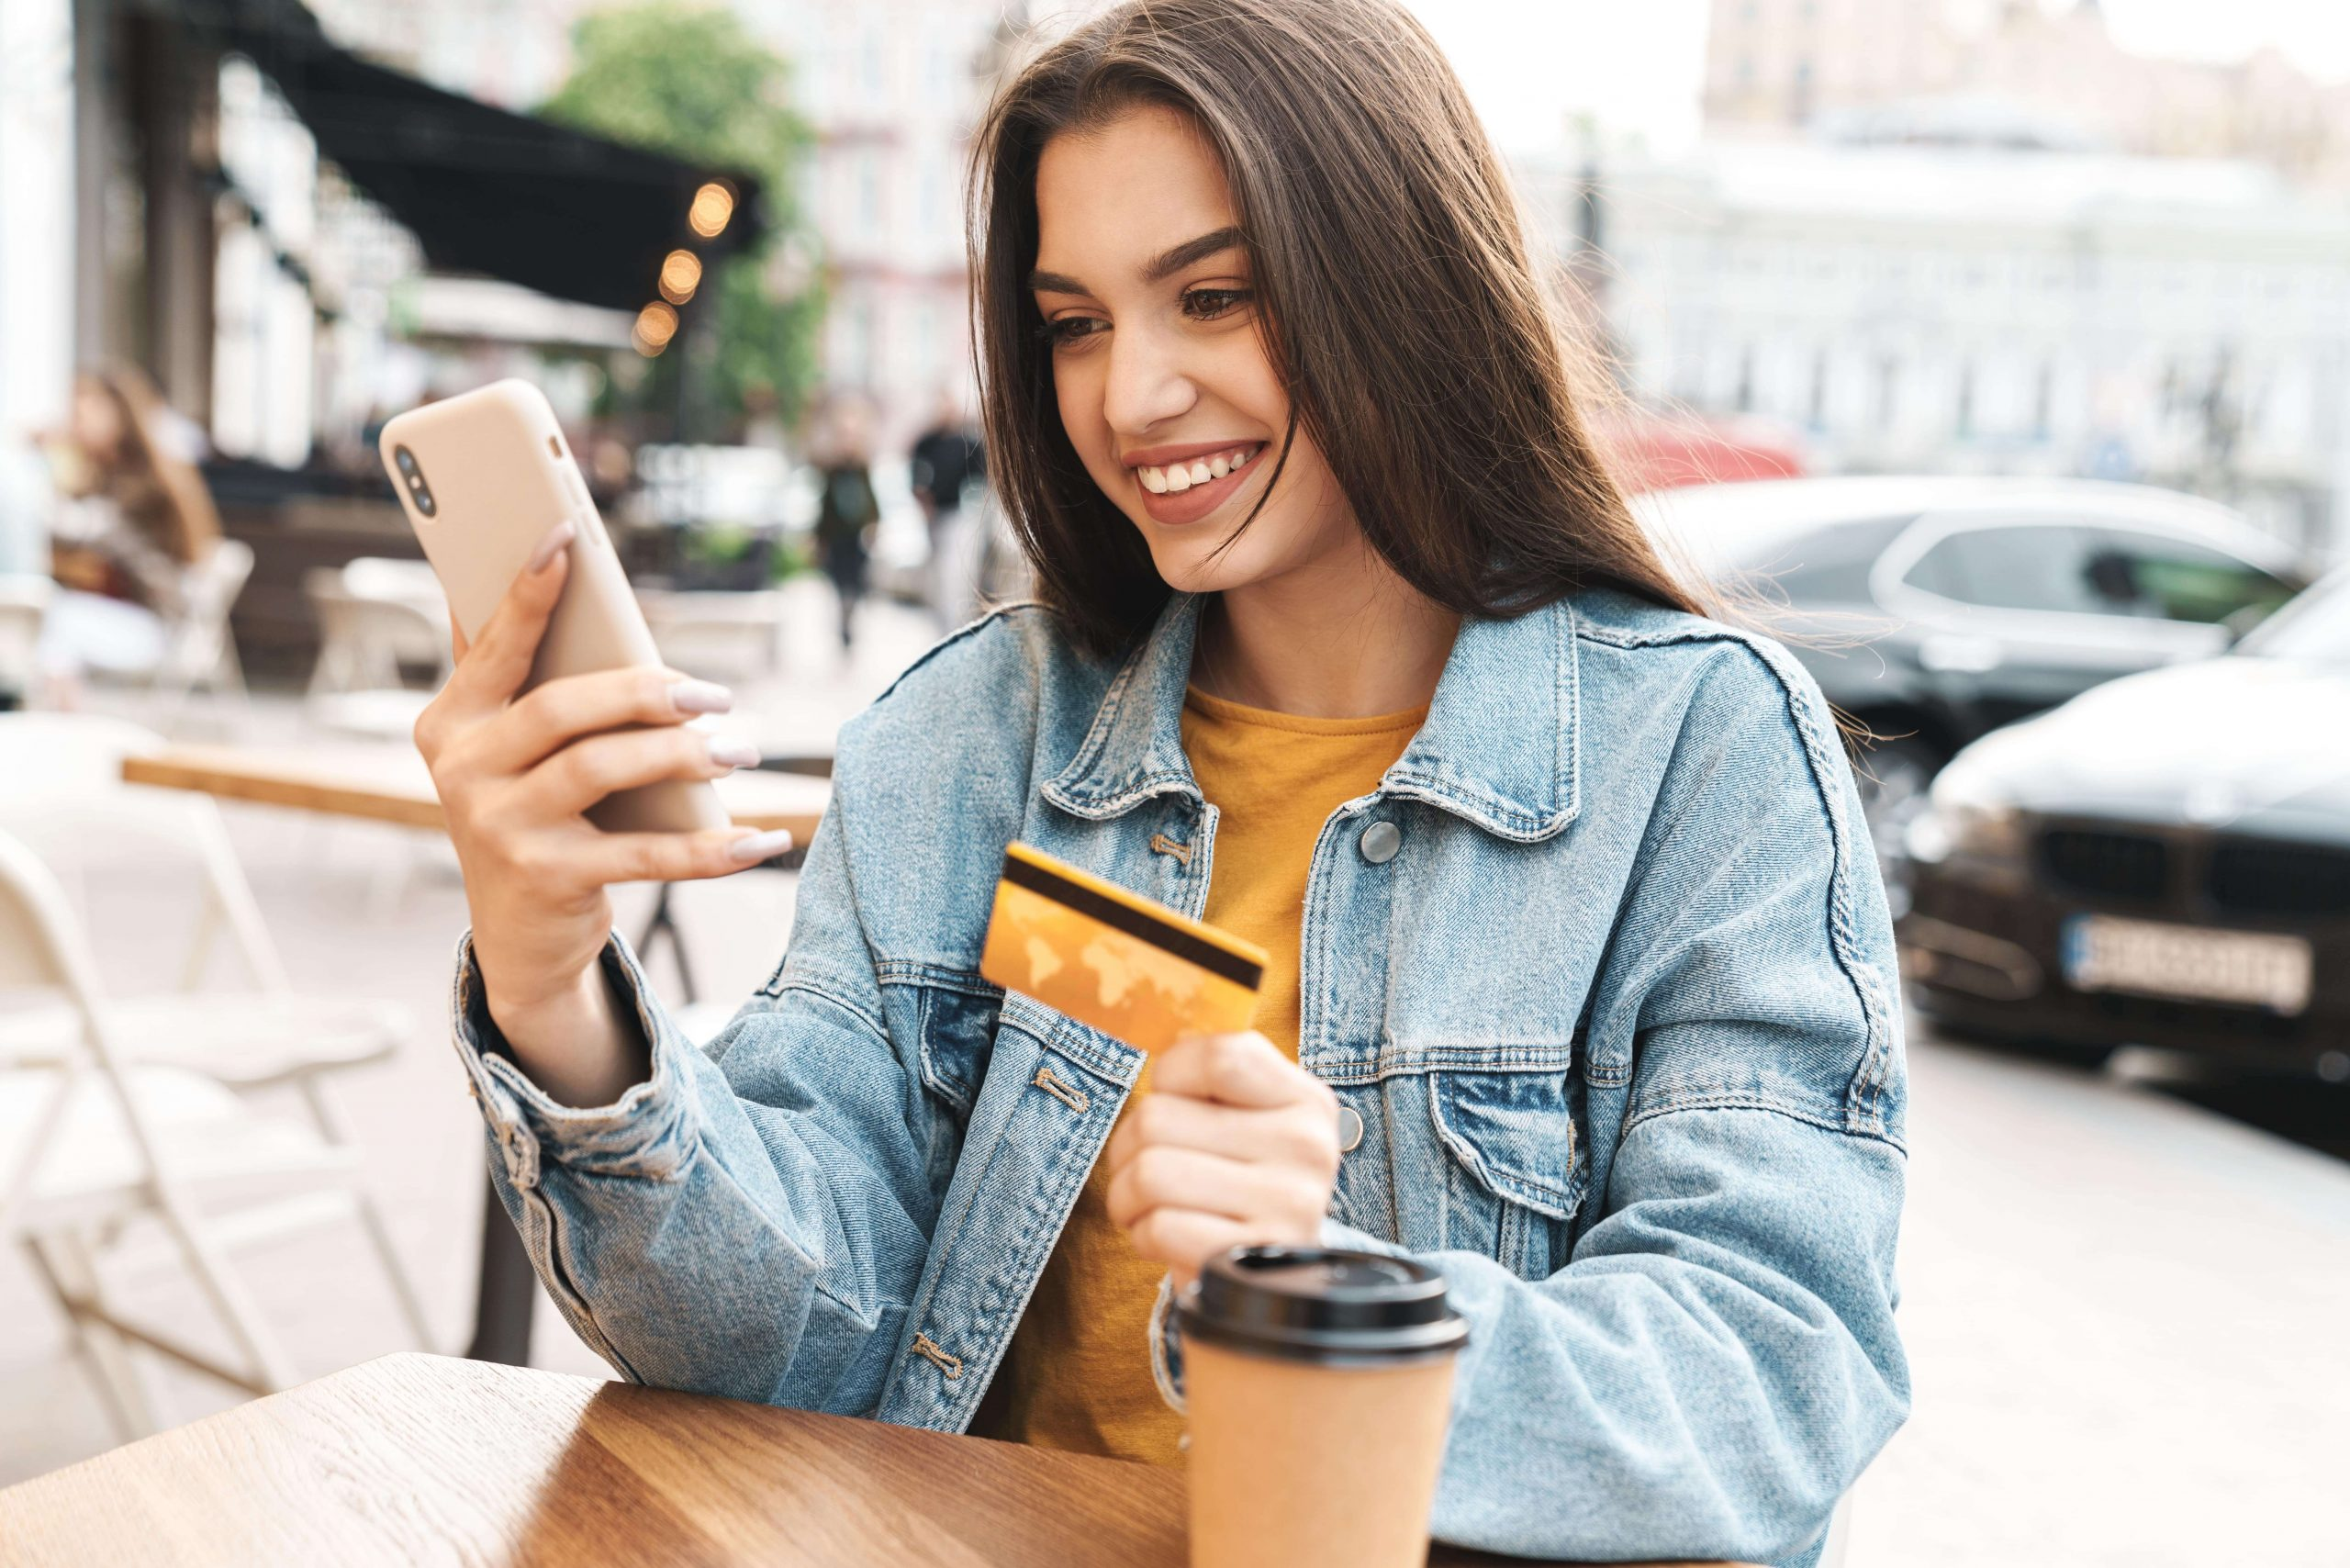 image-of-smiling-woman-using-cellphone-and-holding-DXTXRFW-min